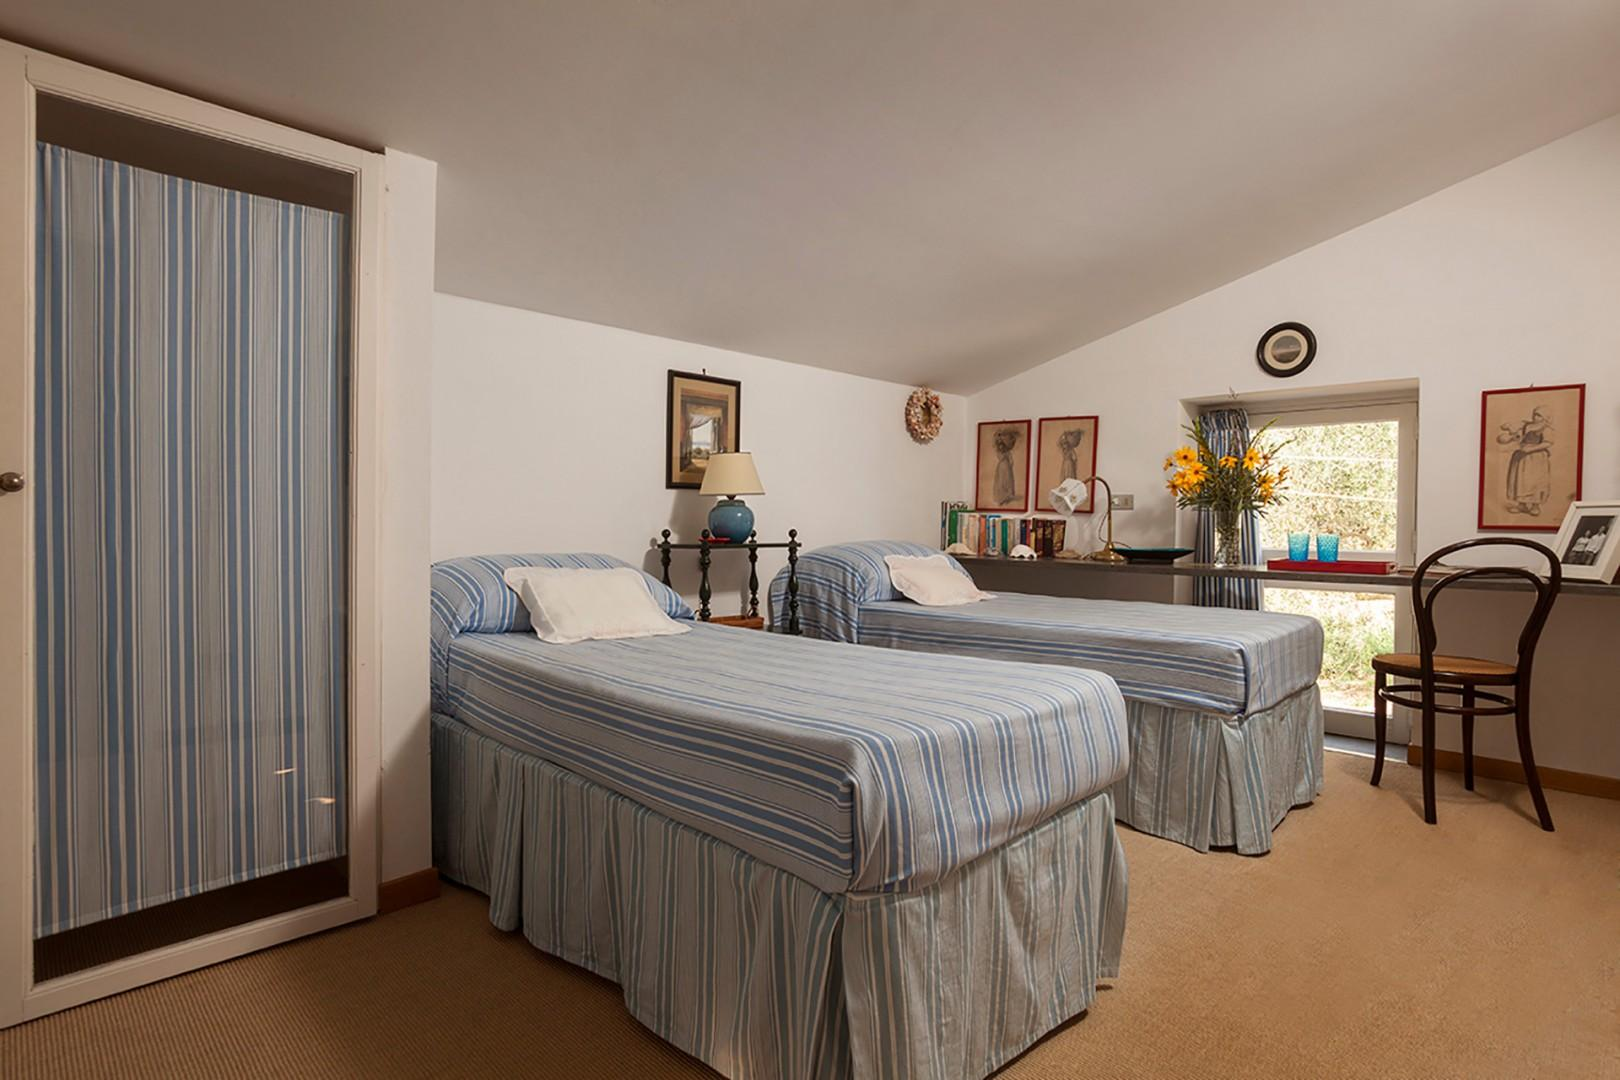 Bedroom 5 on the top floor can be made up as one large bed or remain two separate beds.